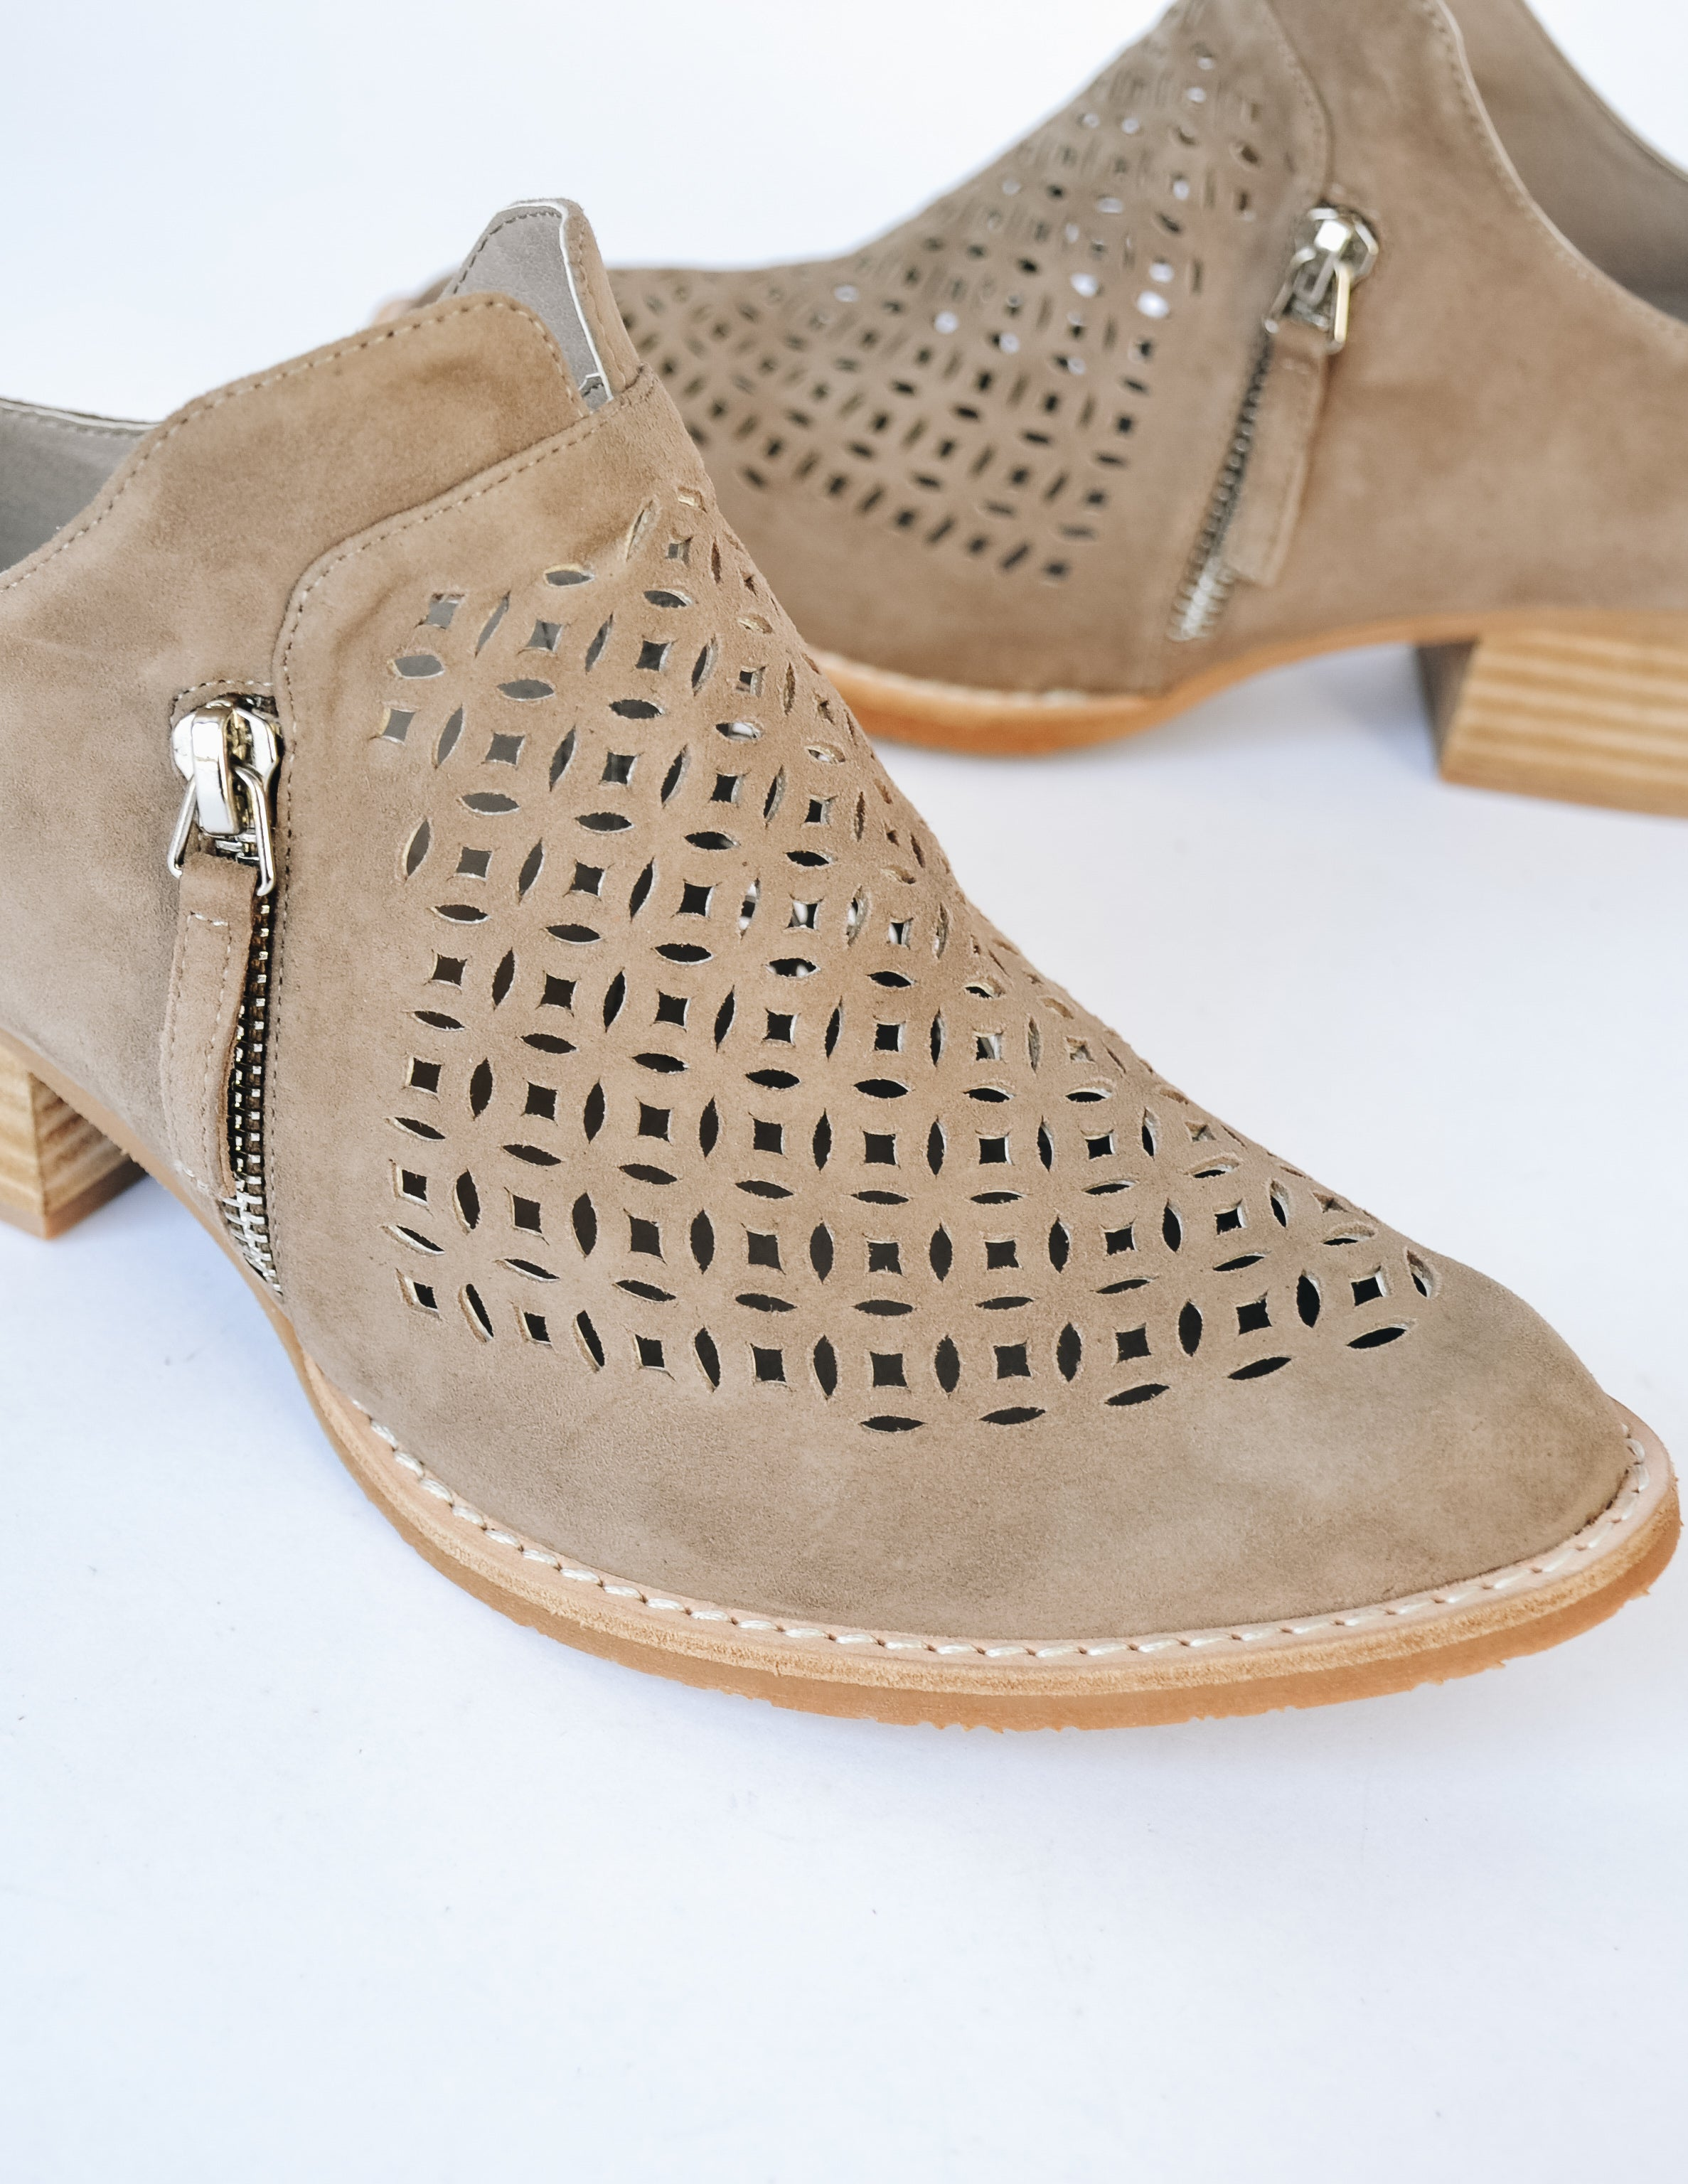 Taupe Taniss bootie with almond toe, wood sole, and faux zipper details - Elle Bleu Shoe Boutique